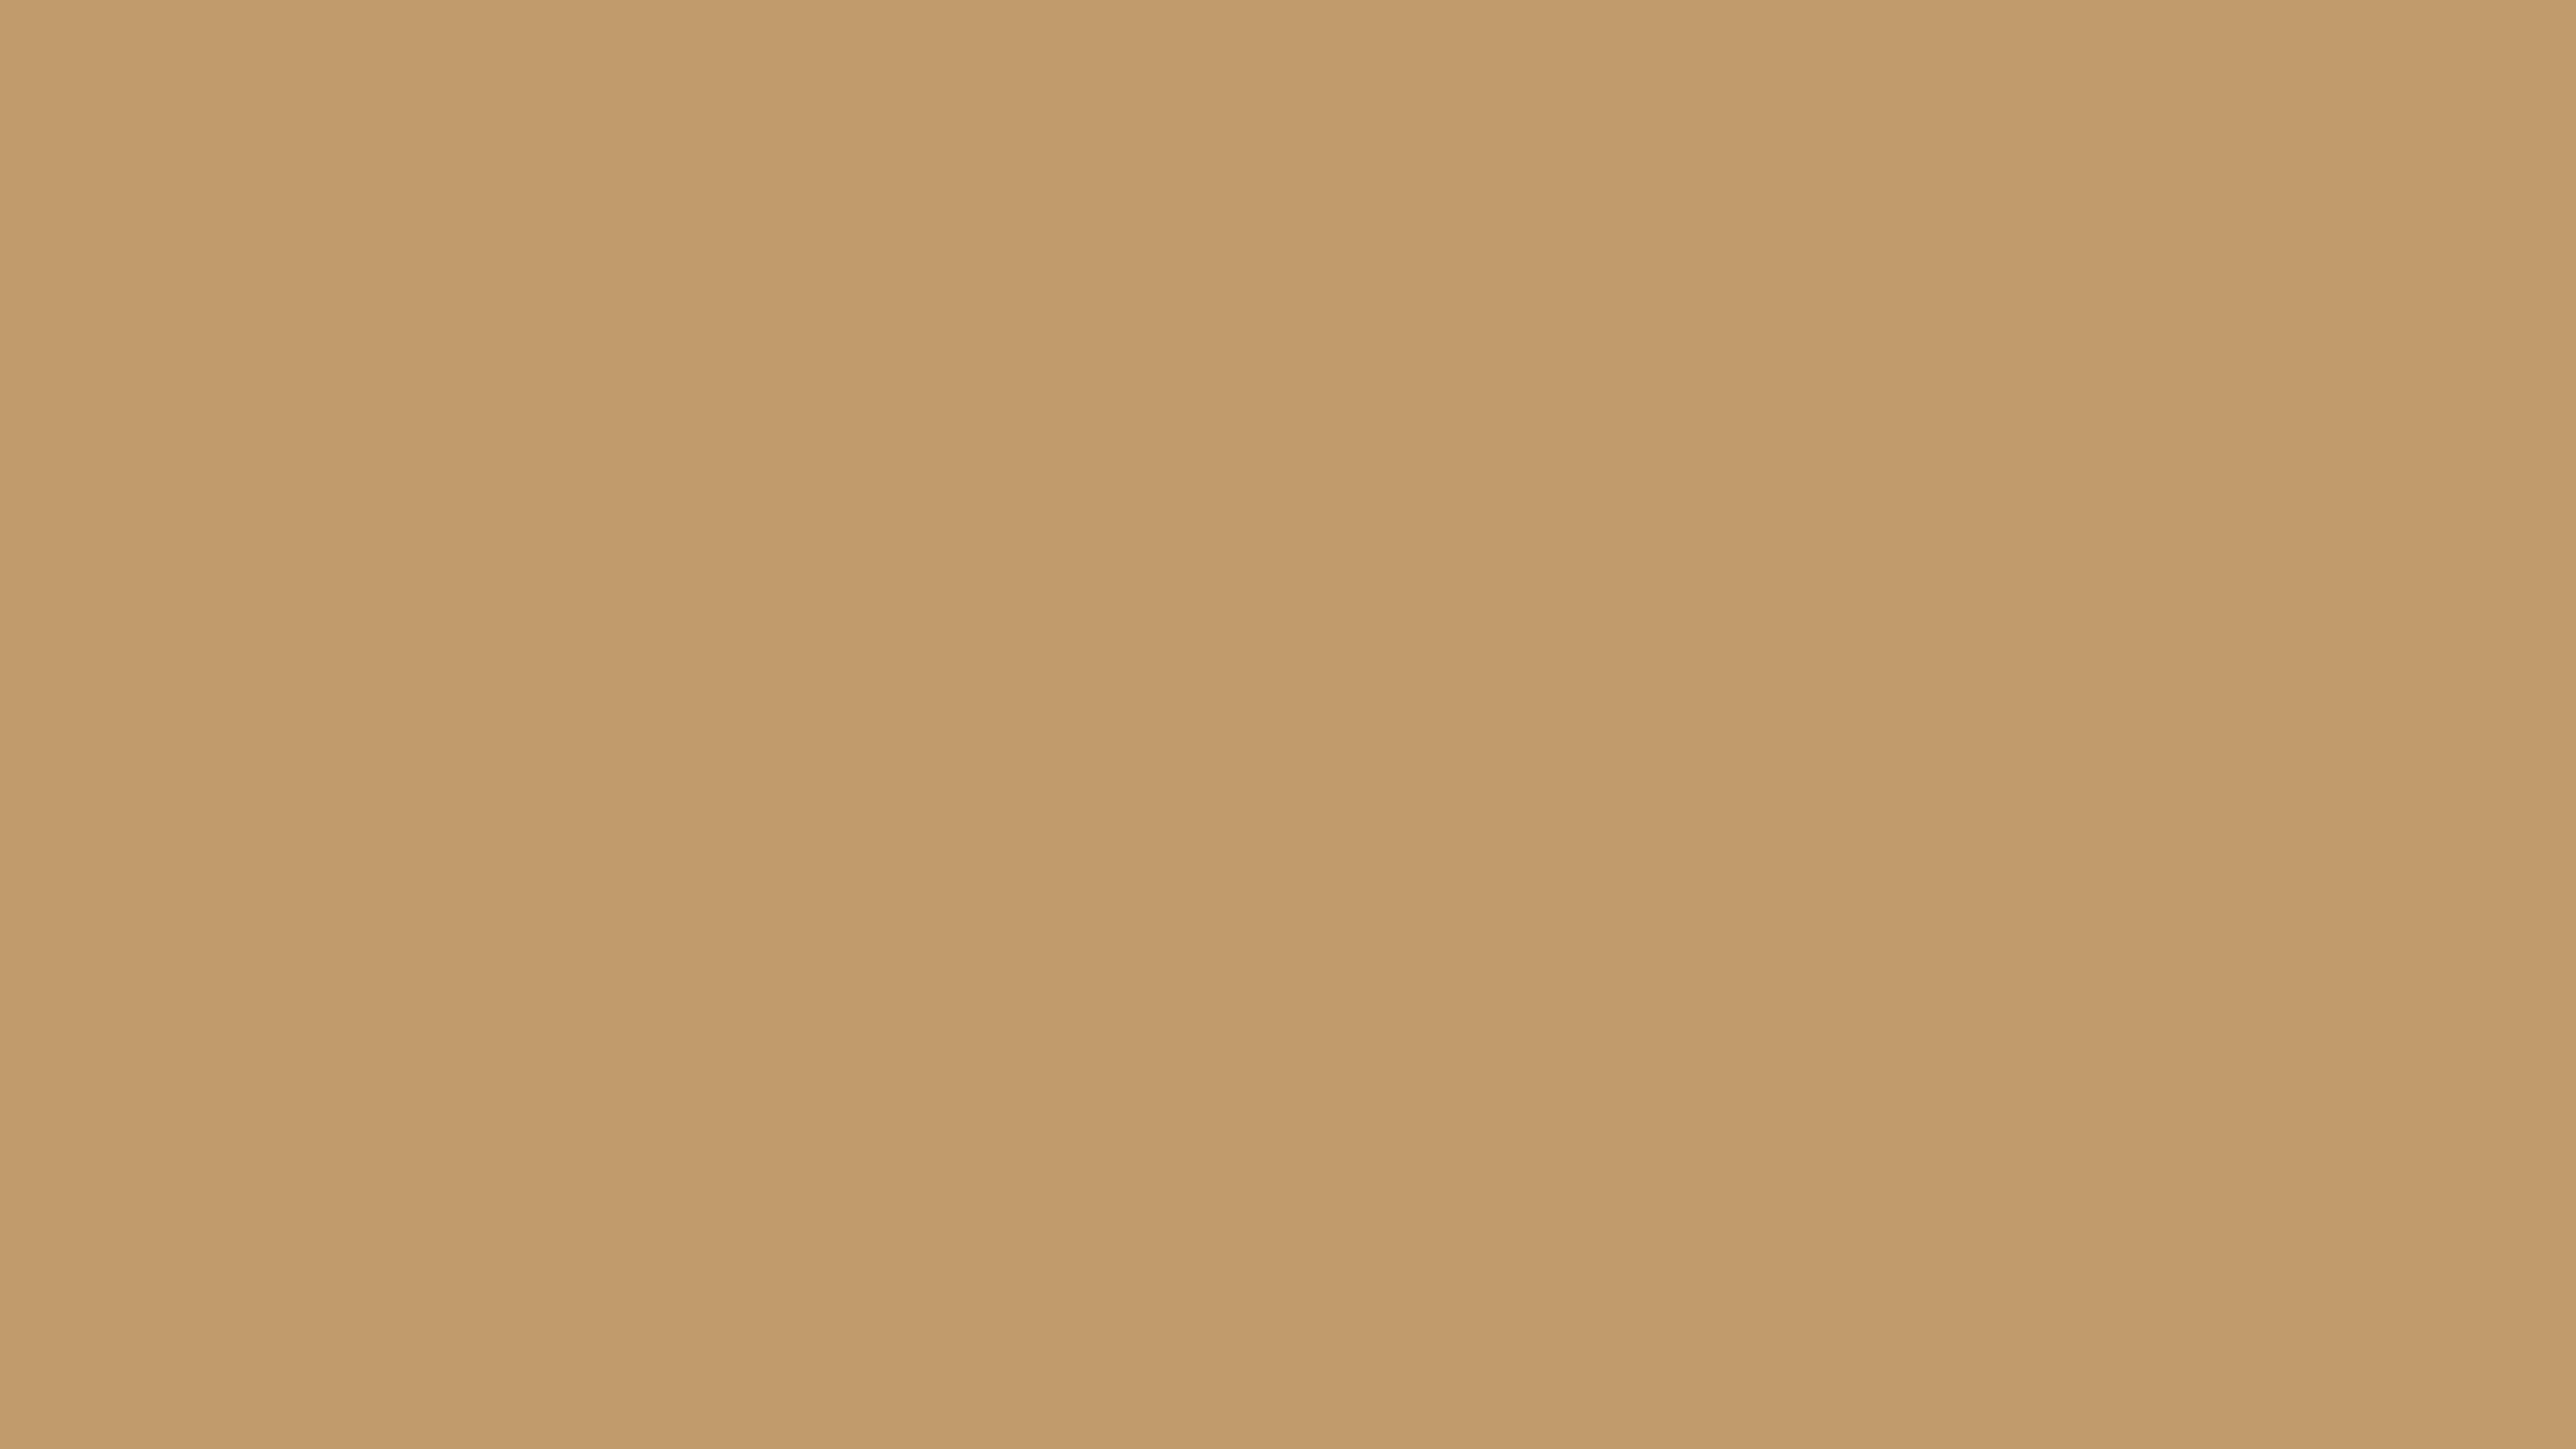 3840x2160 Wood Brown Solid Color Background